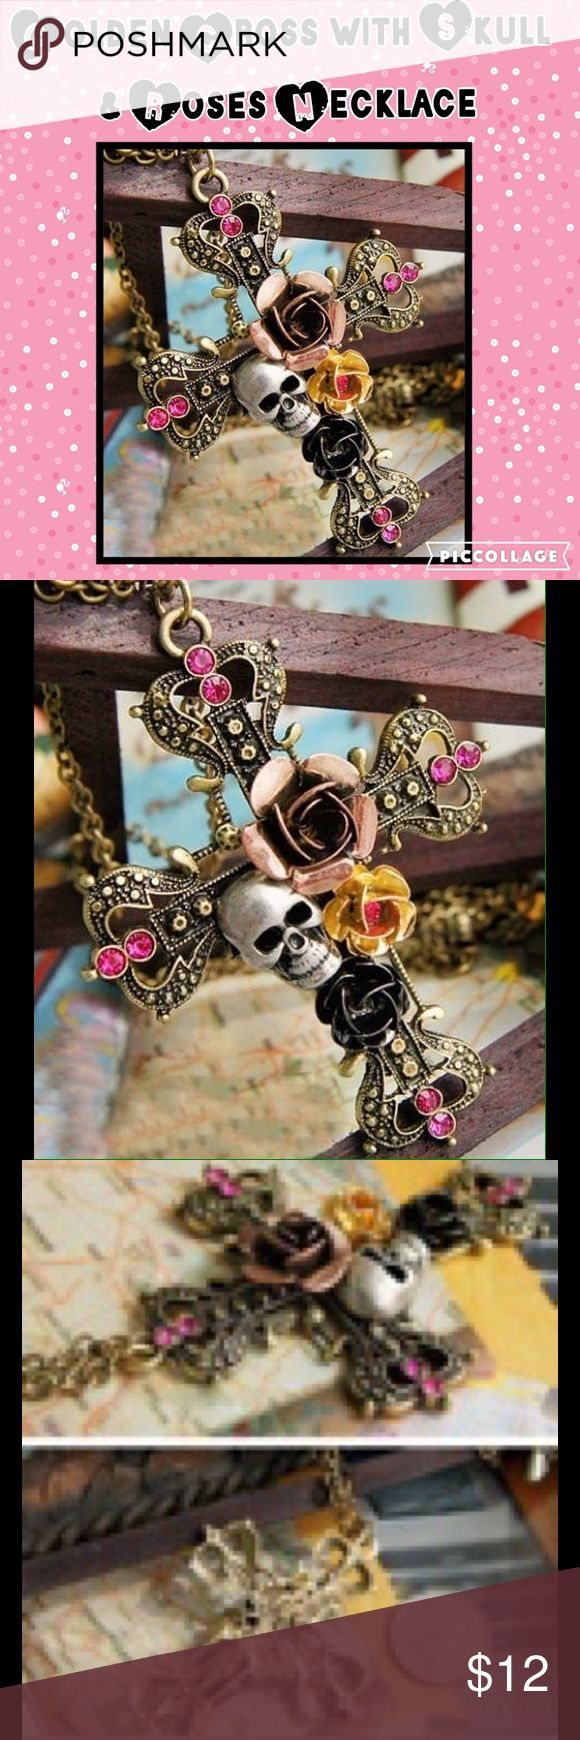 Golden Cross with Skull & Roses Necklace NWT! Golden Cross with Skull  & Roses Necklace NWT! Jewelry Necklaces